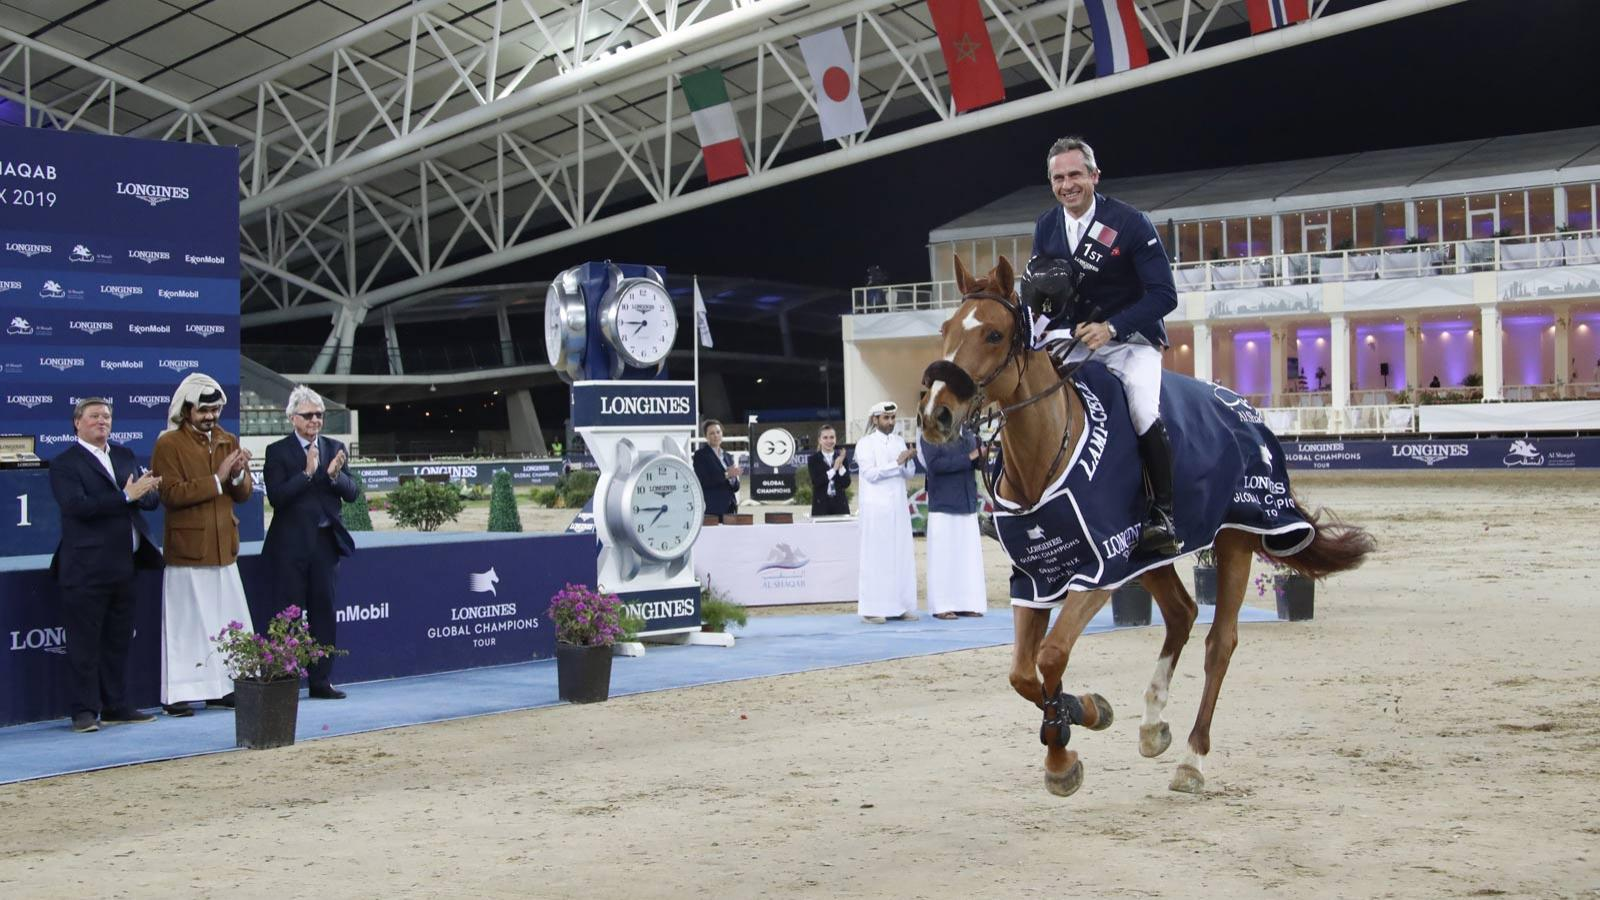 Longines Global Champions Tour of Doha; Jumping; 2019,pic2